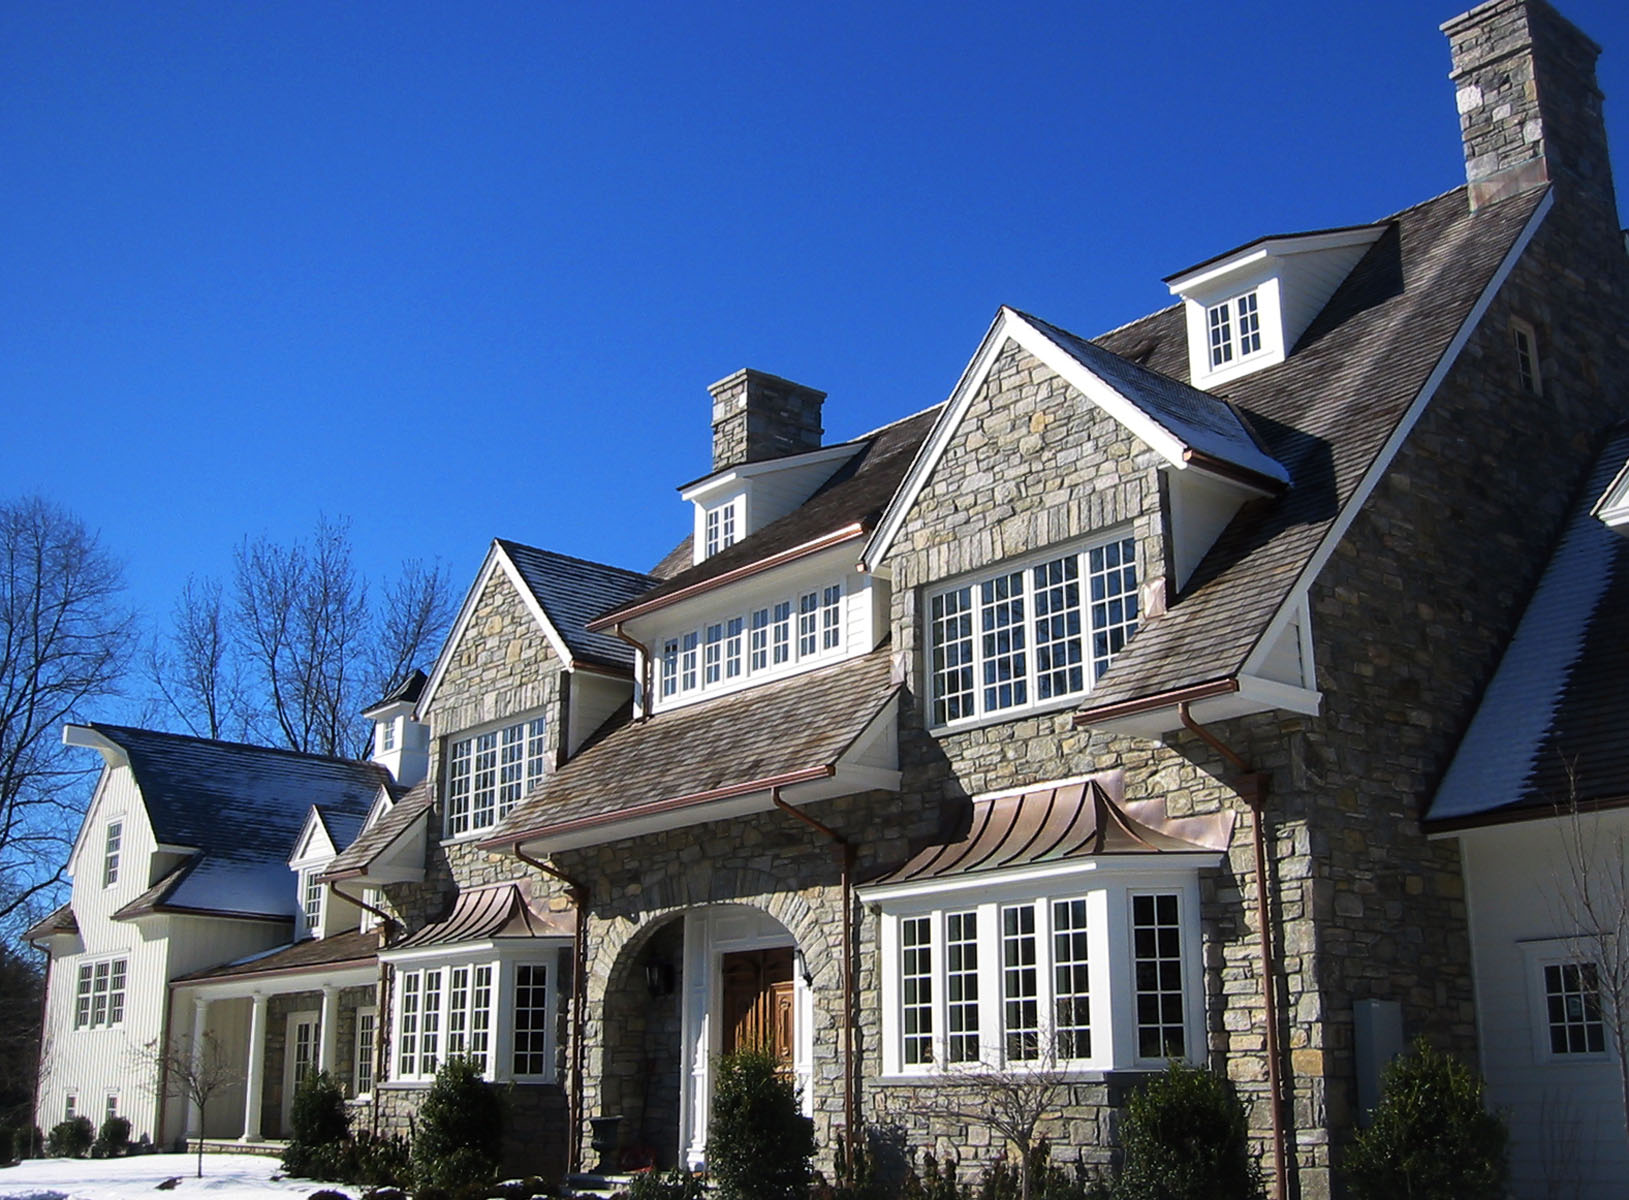 Westport Connecticut Homes Images